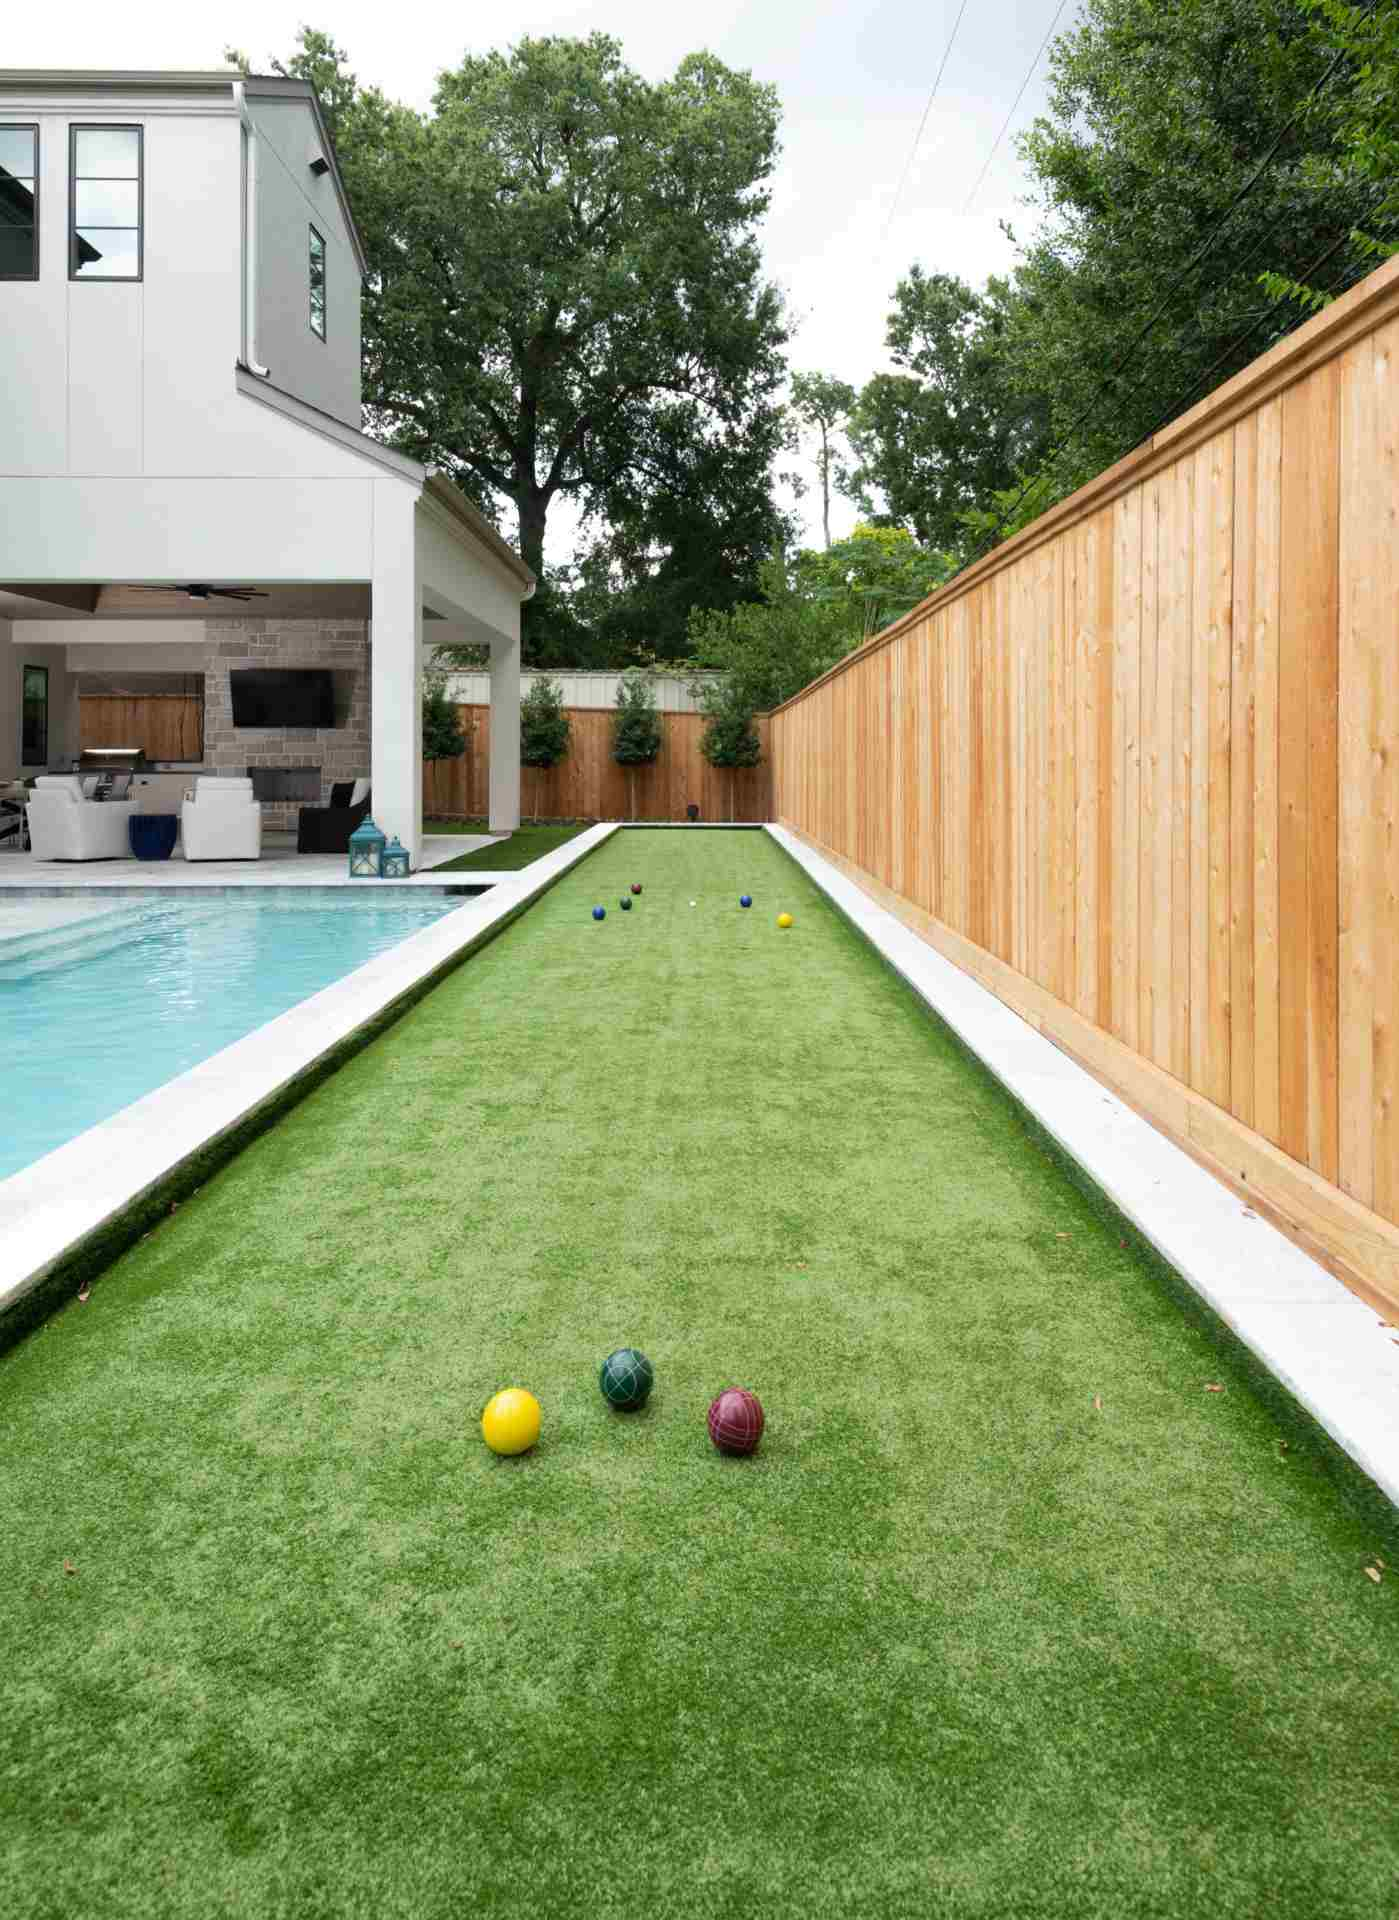 Bocce ball court designed and built by AVEA Pools